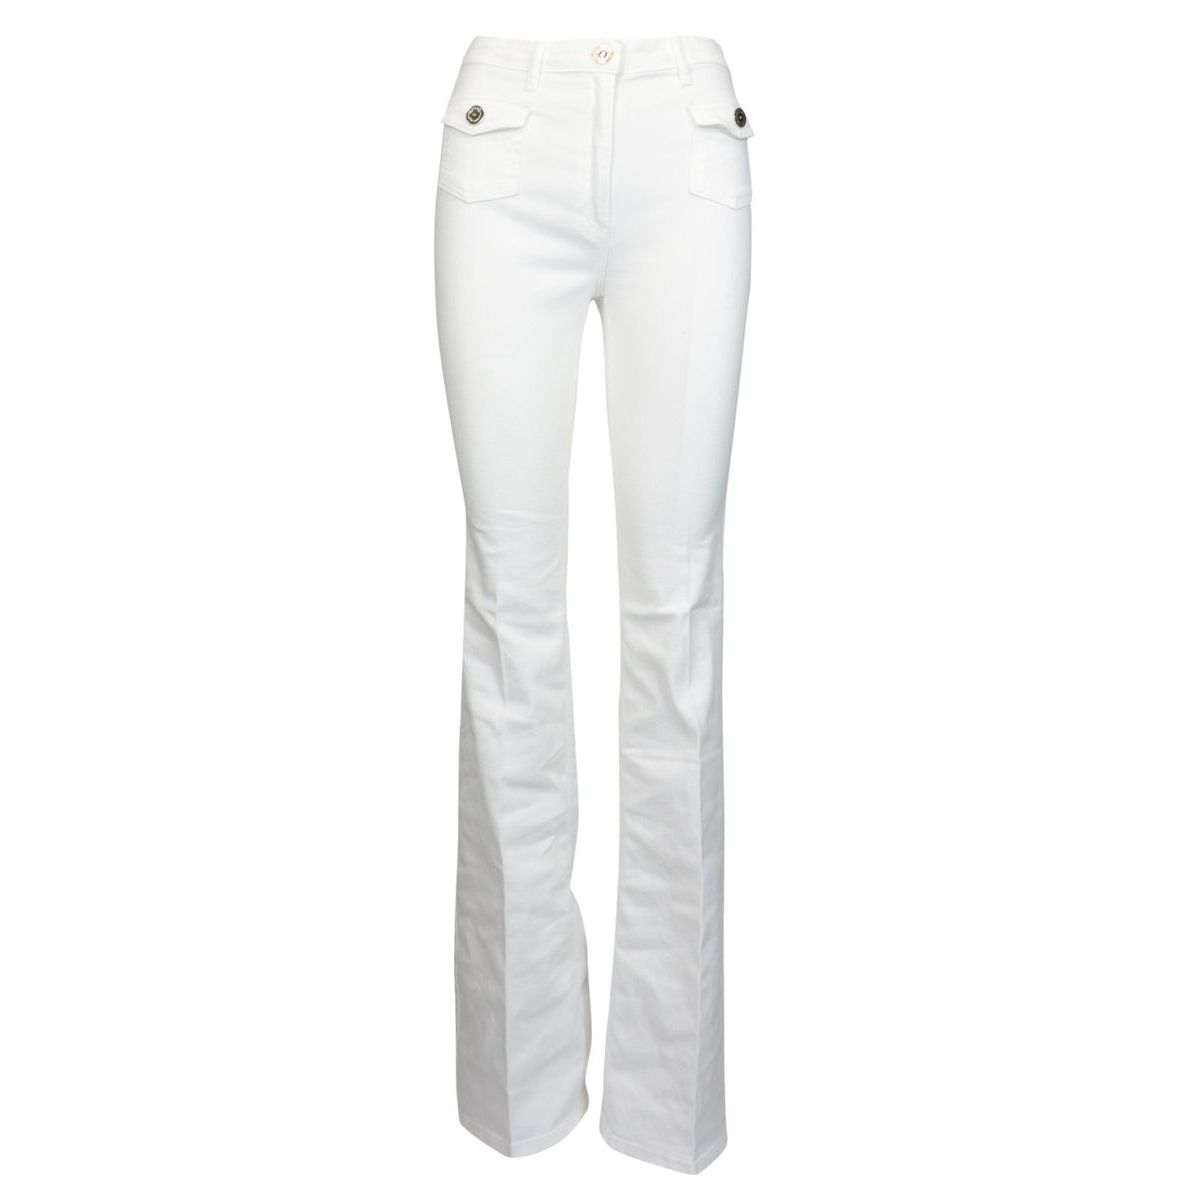 Slim jeans with pockets and buttons White Elisabetta Franchi